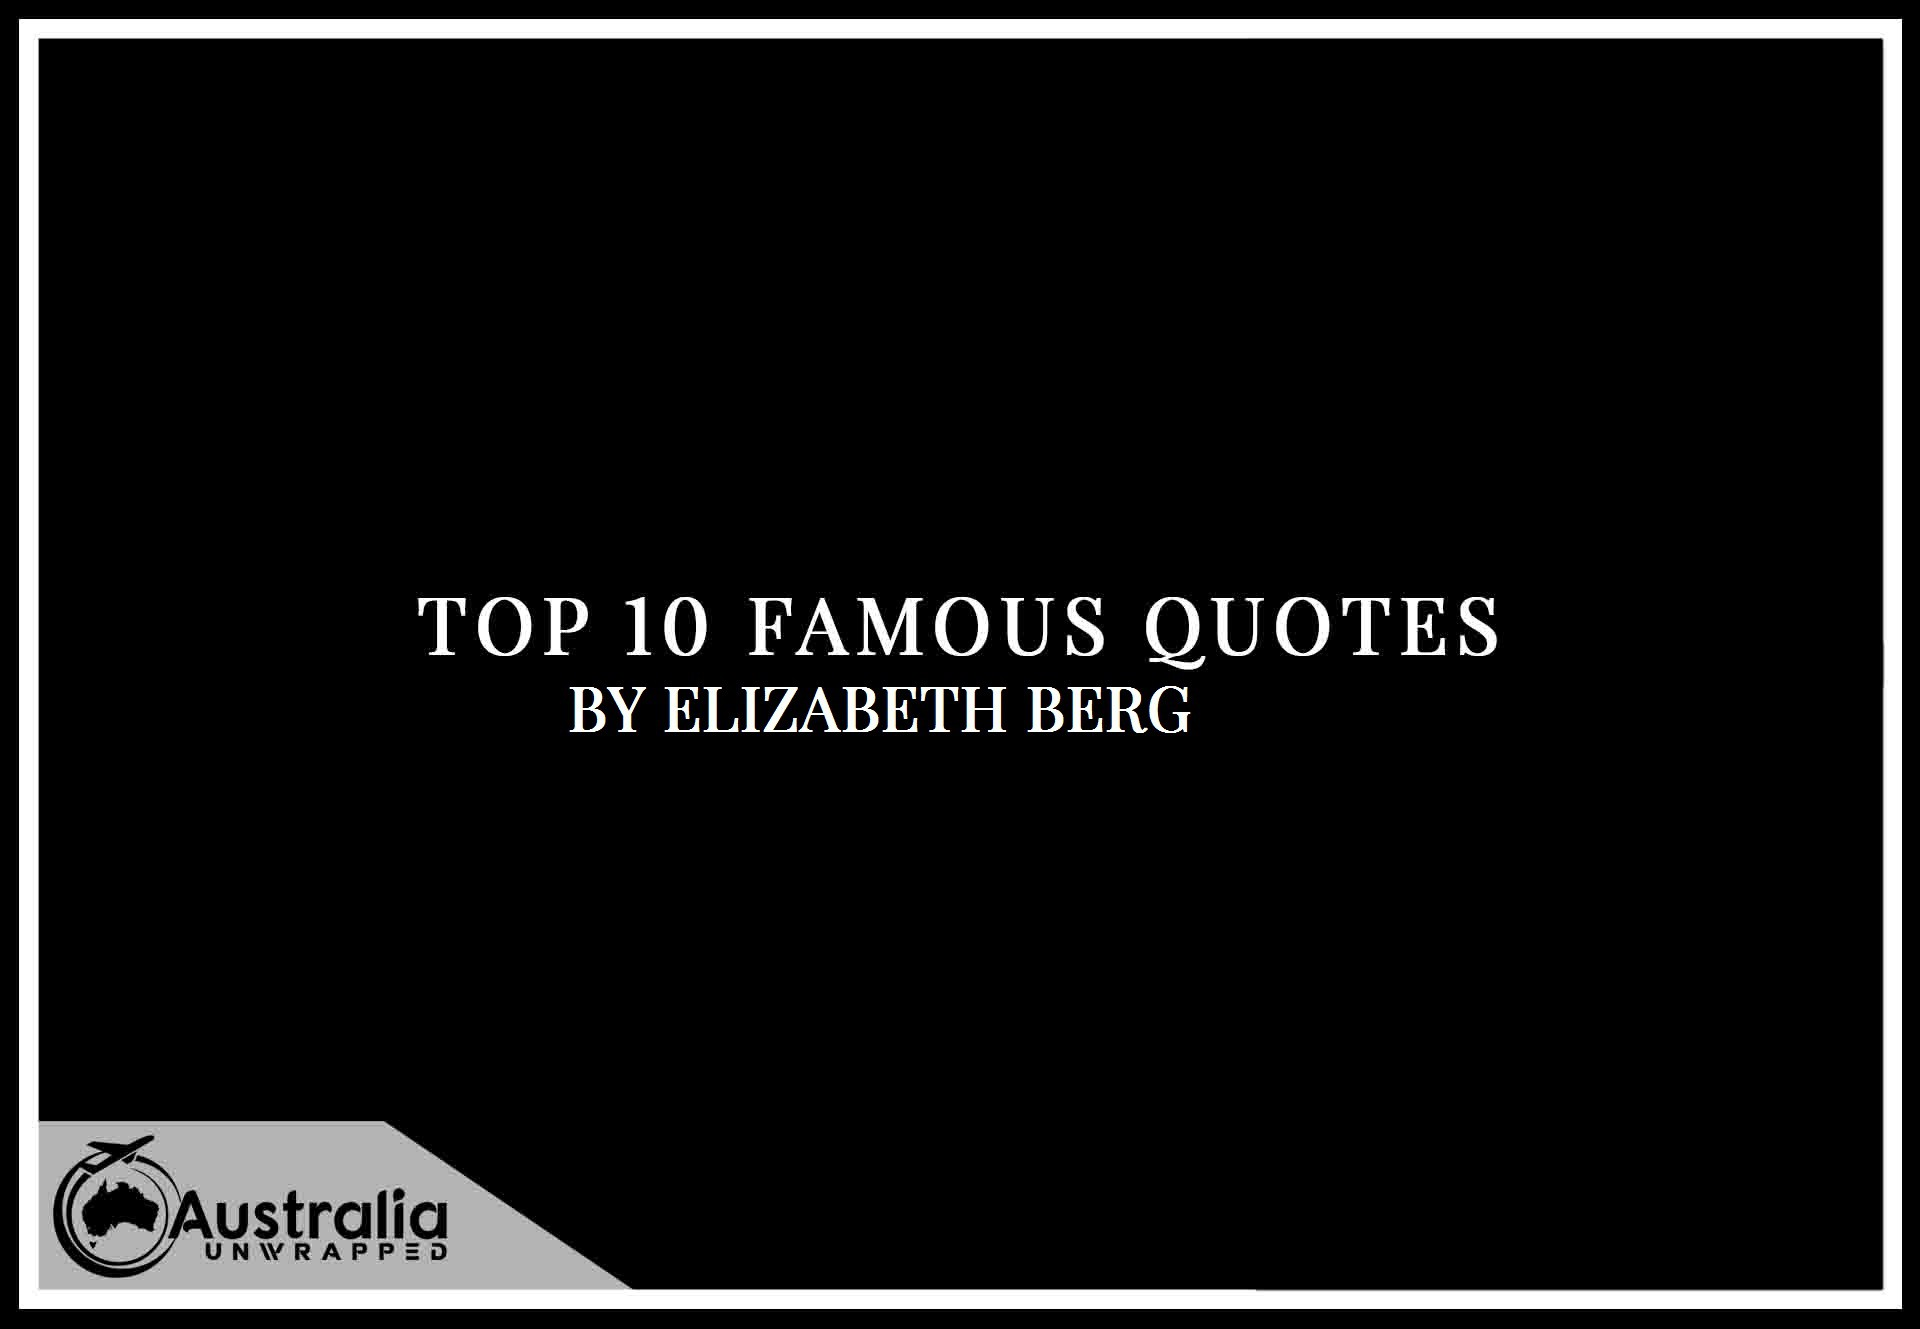 Elizabeth Berg's Top 10 Popular and Famous Quotes